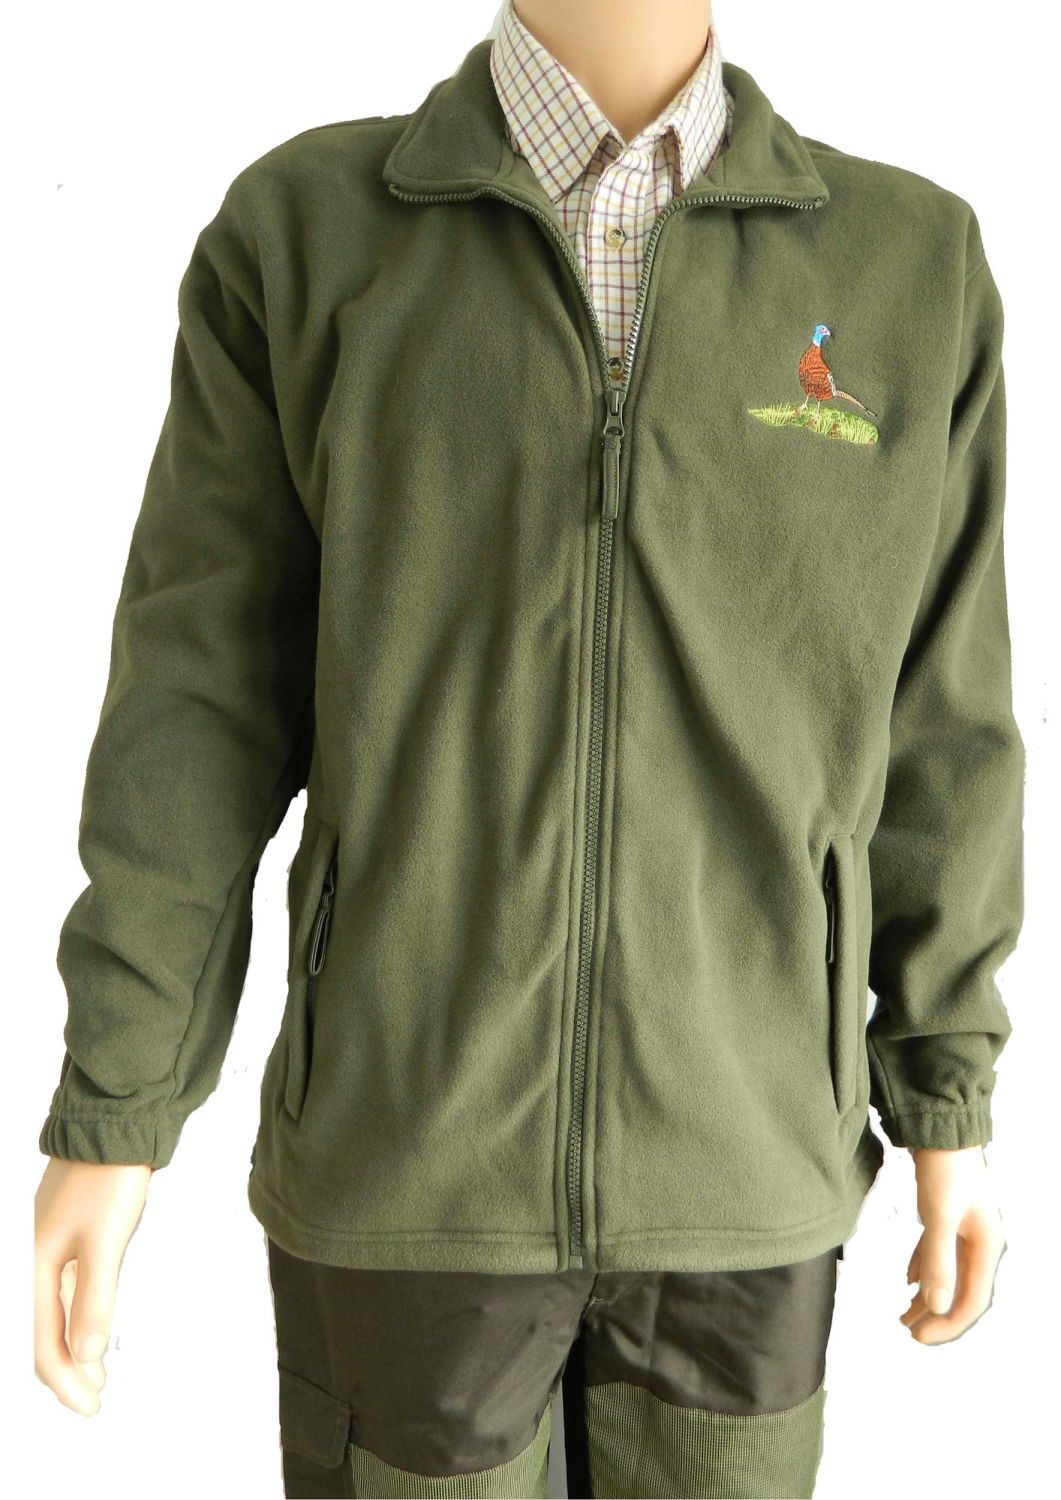 Fleece Jacket with pheasant motif